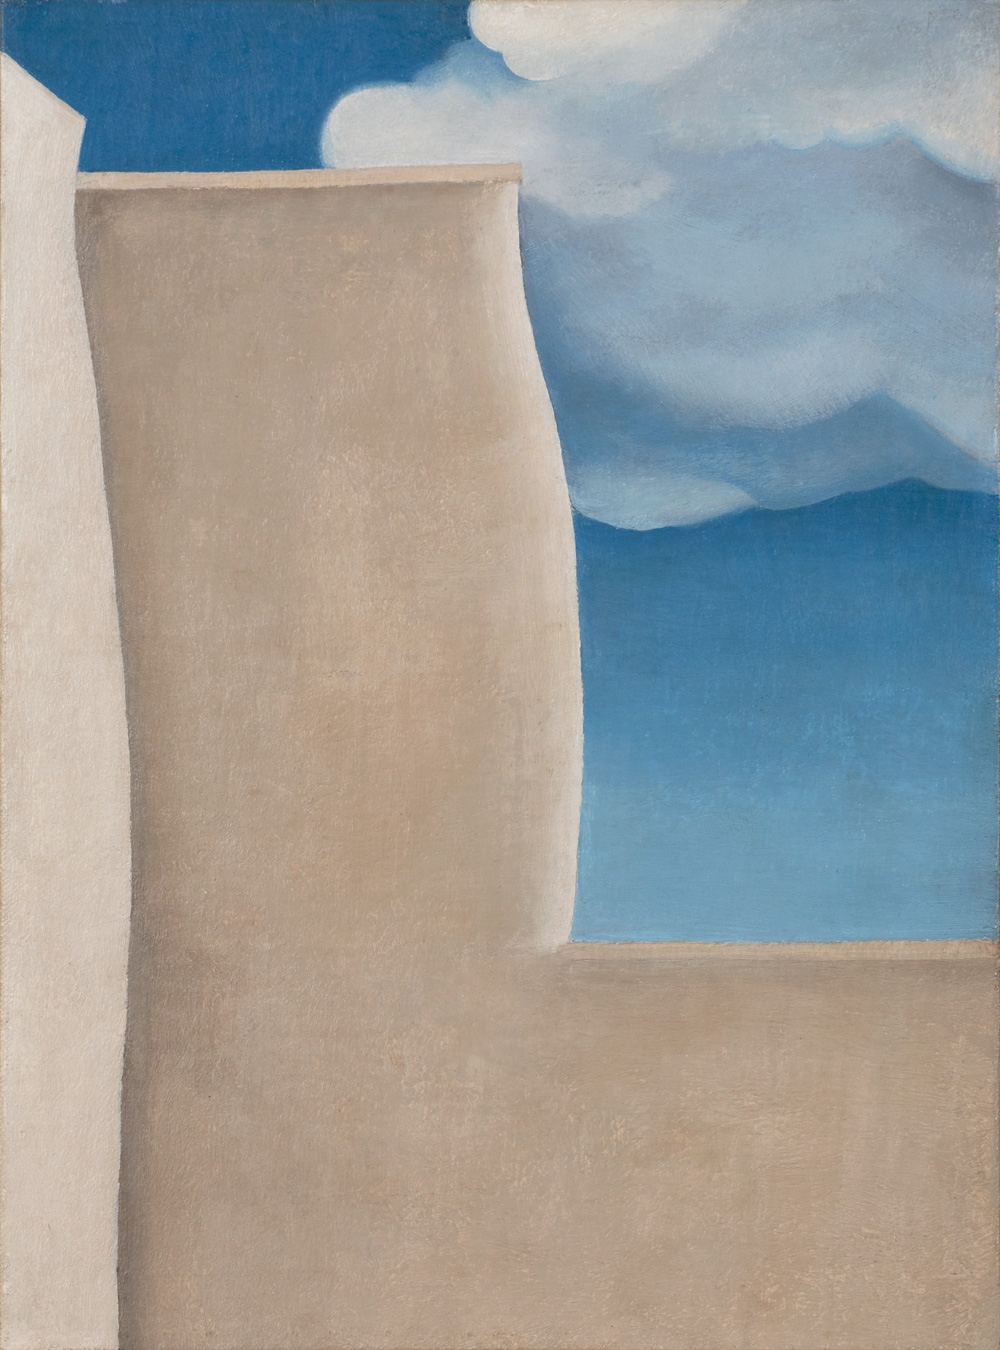 GEORGIA O'KEEFFE  (1887-1986)   A Fragment of the Ranchos de Taos Church , 1929 Oil on canvas mounted on board 15 x 11 inches Private Collection